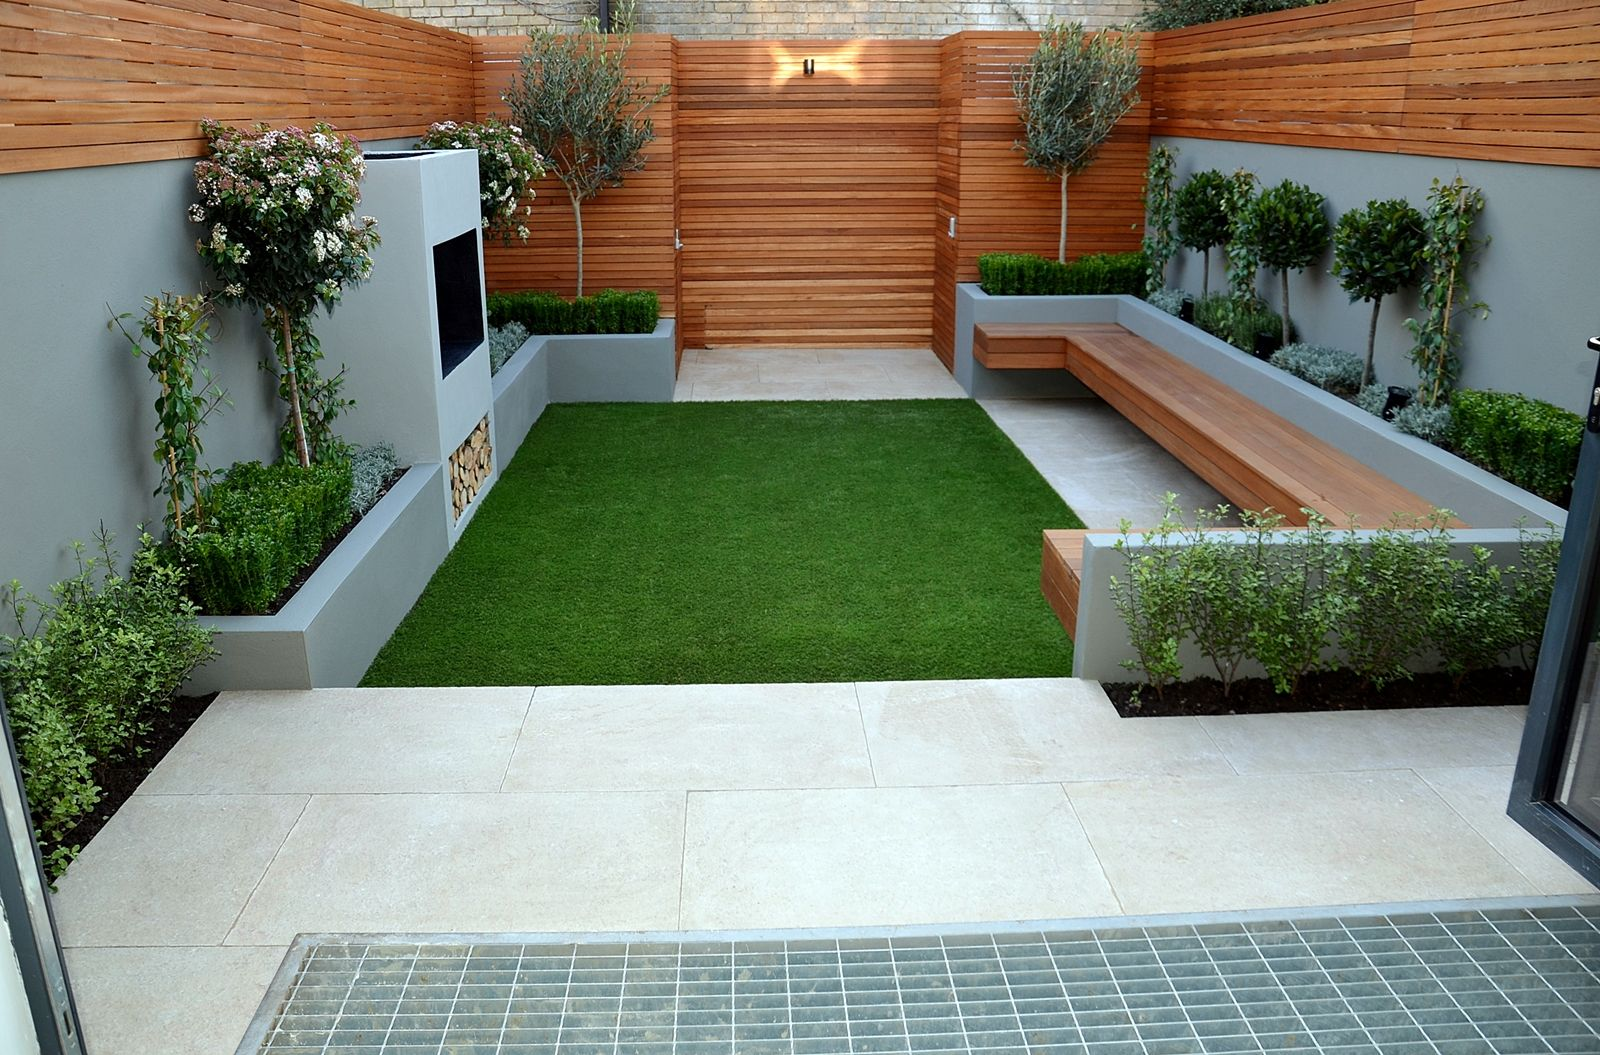 Urban garden design designer gardens landscape design for Small modern garden design ideas